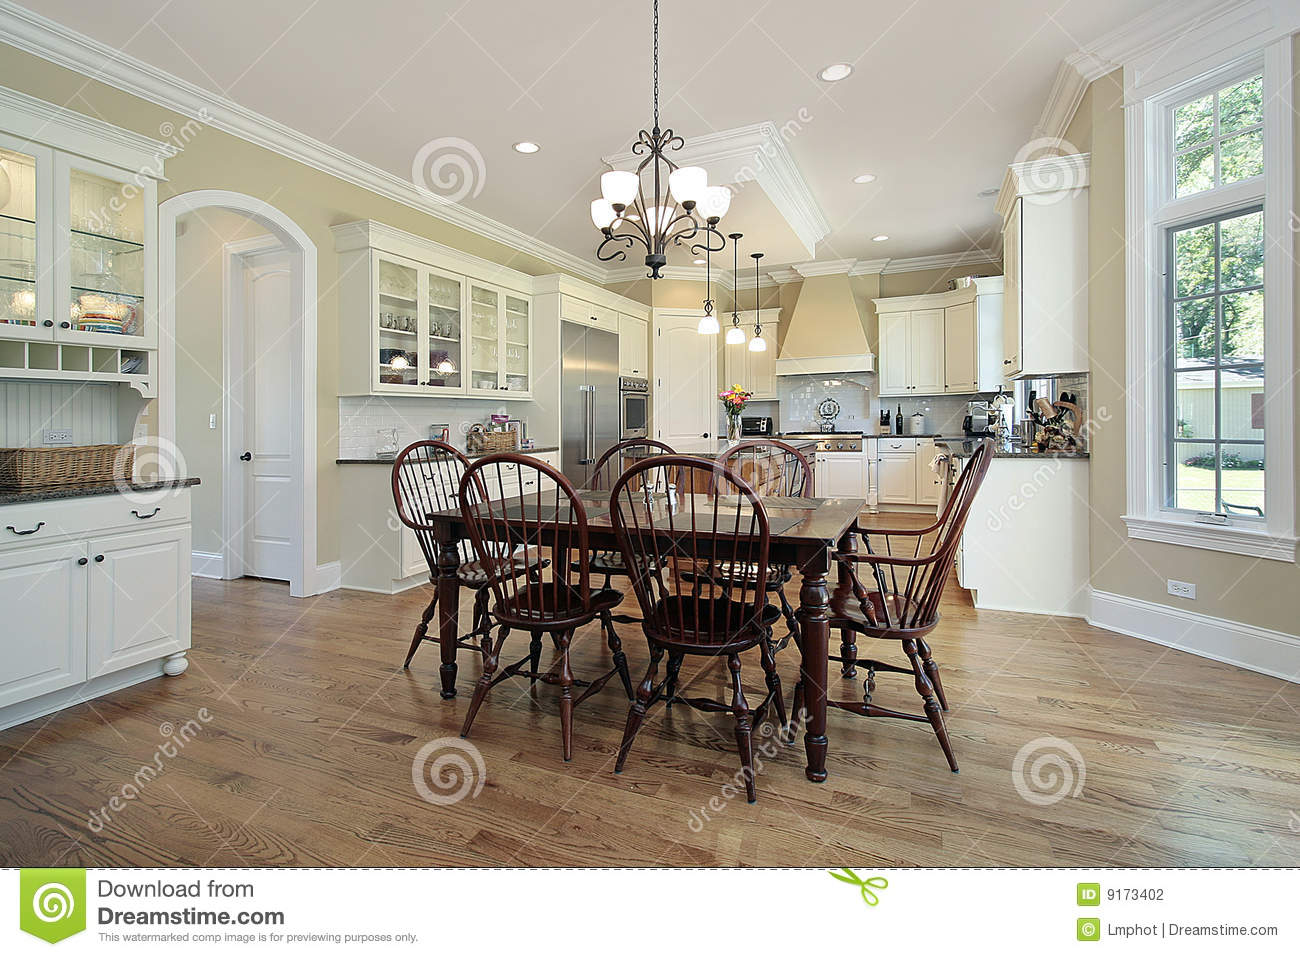 Kitchen Eating Area Kitchen With Eating Area And Island Stock Photography Image 9173402